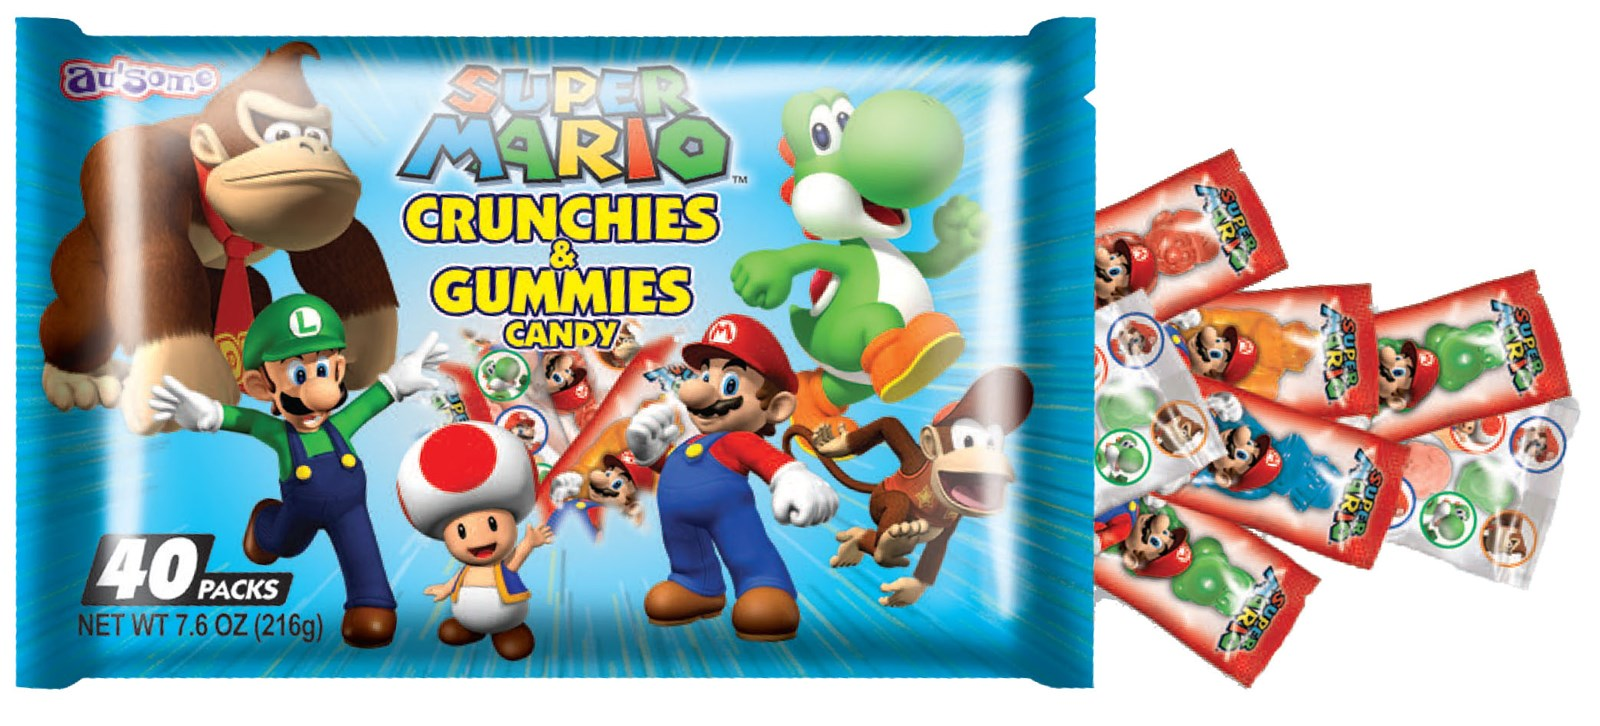 Super Mario Crunchies and Gummies Candy